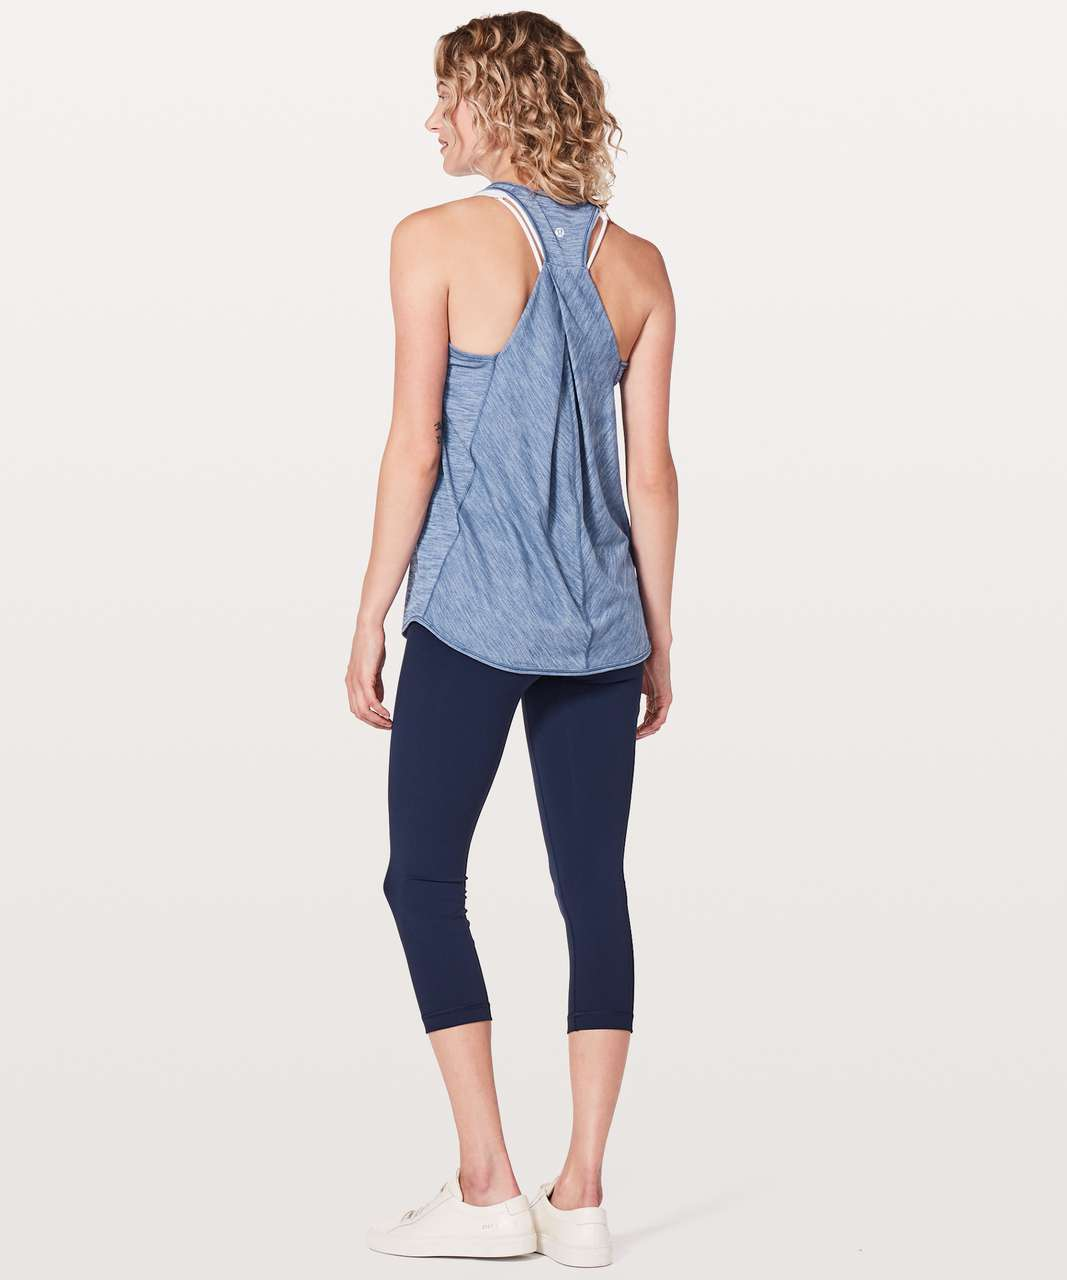 Lululemon Essential Tank - Heathered Brilliant Blue